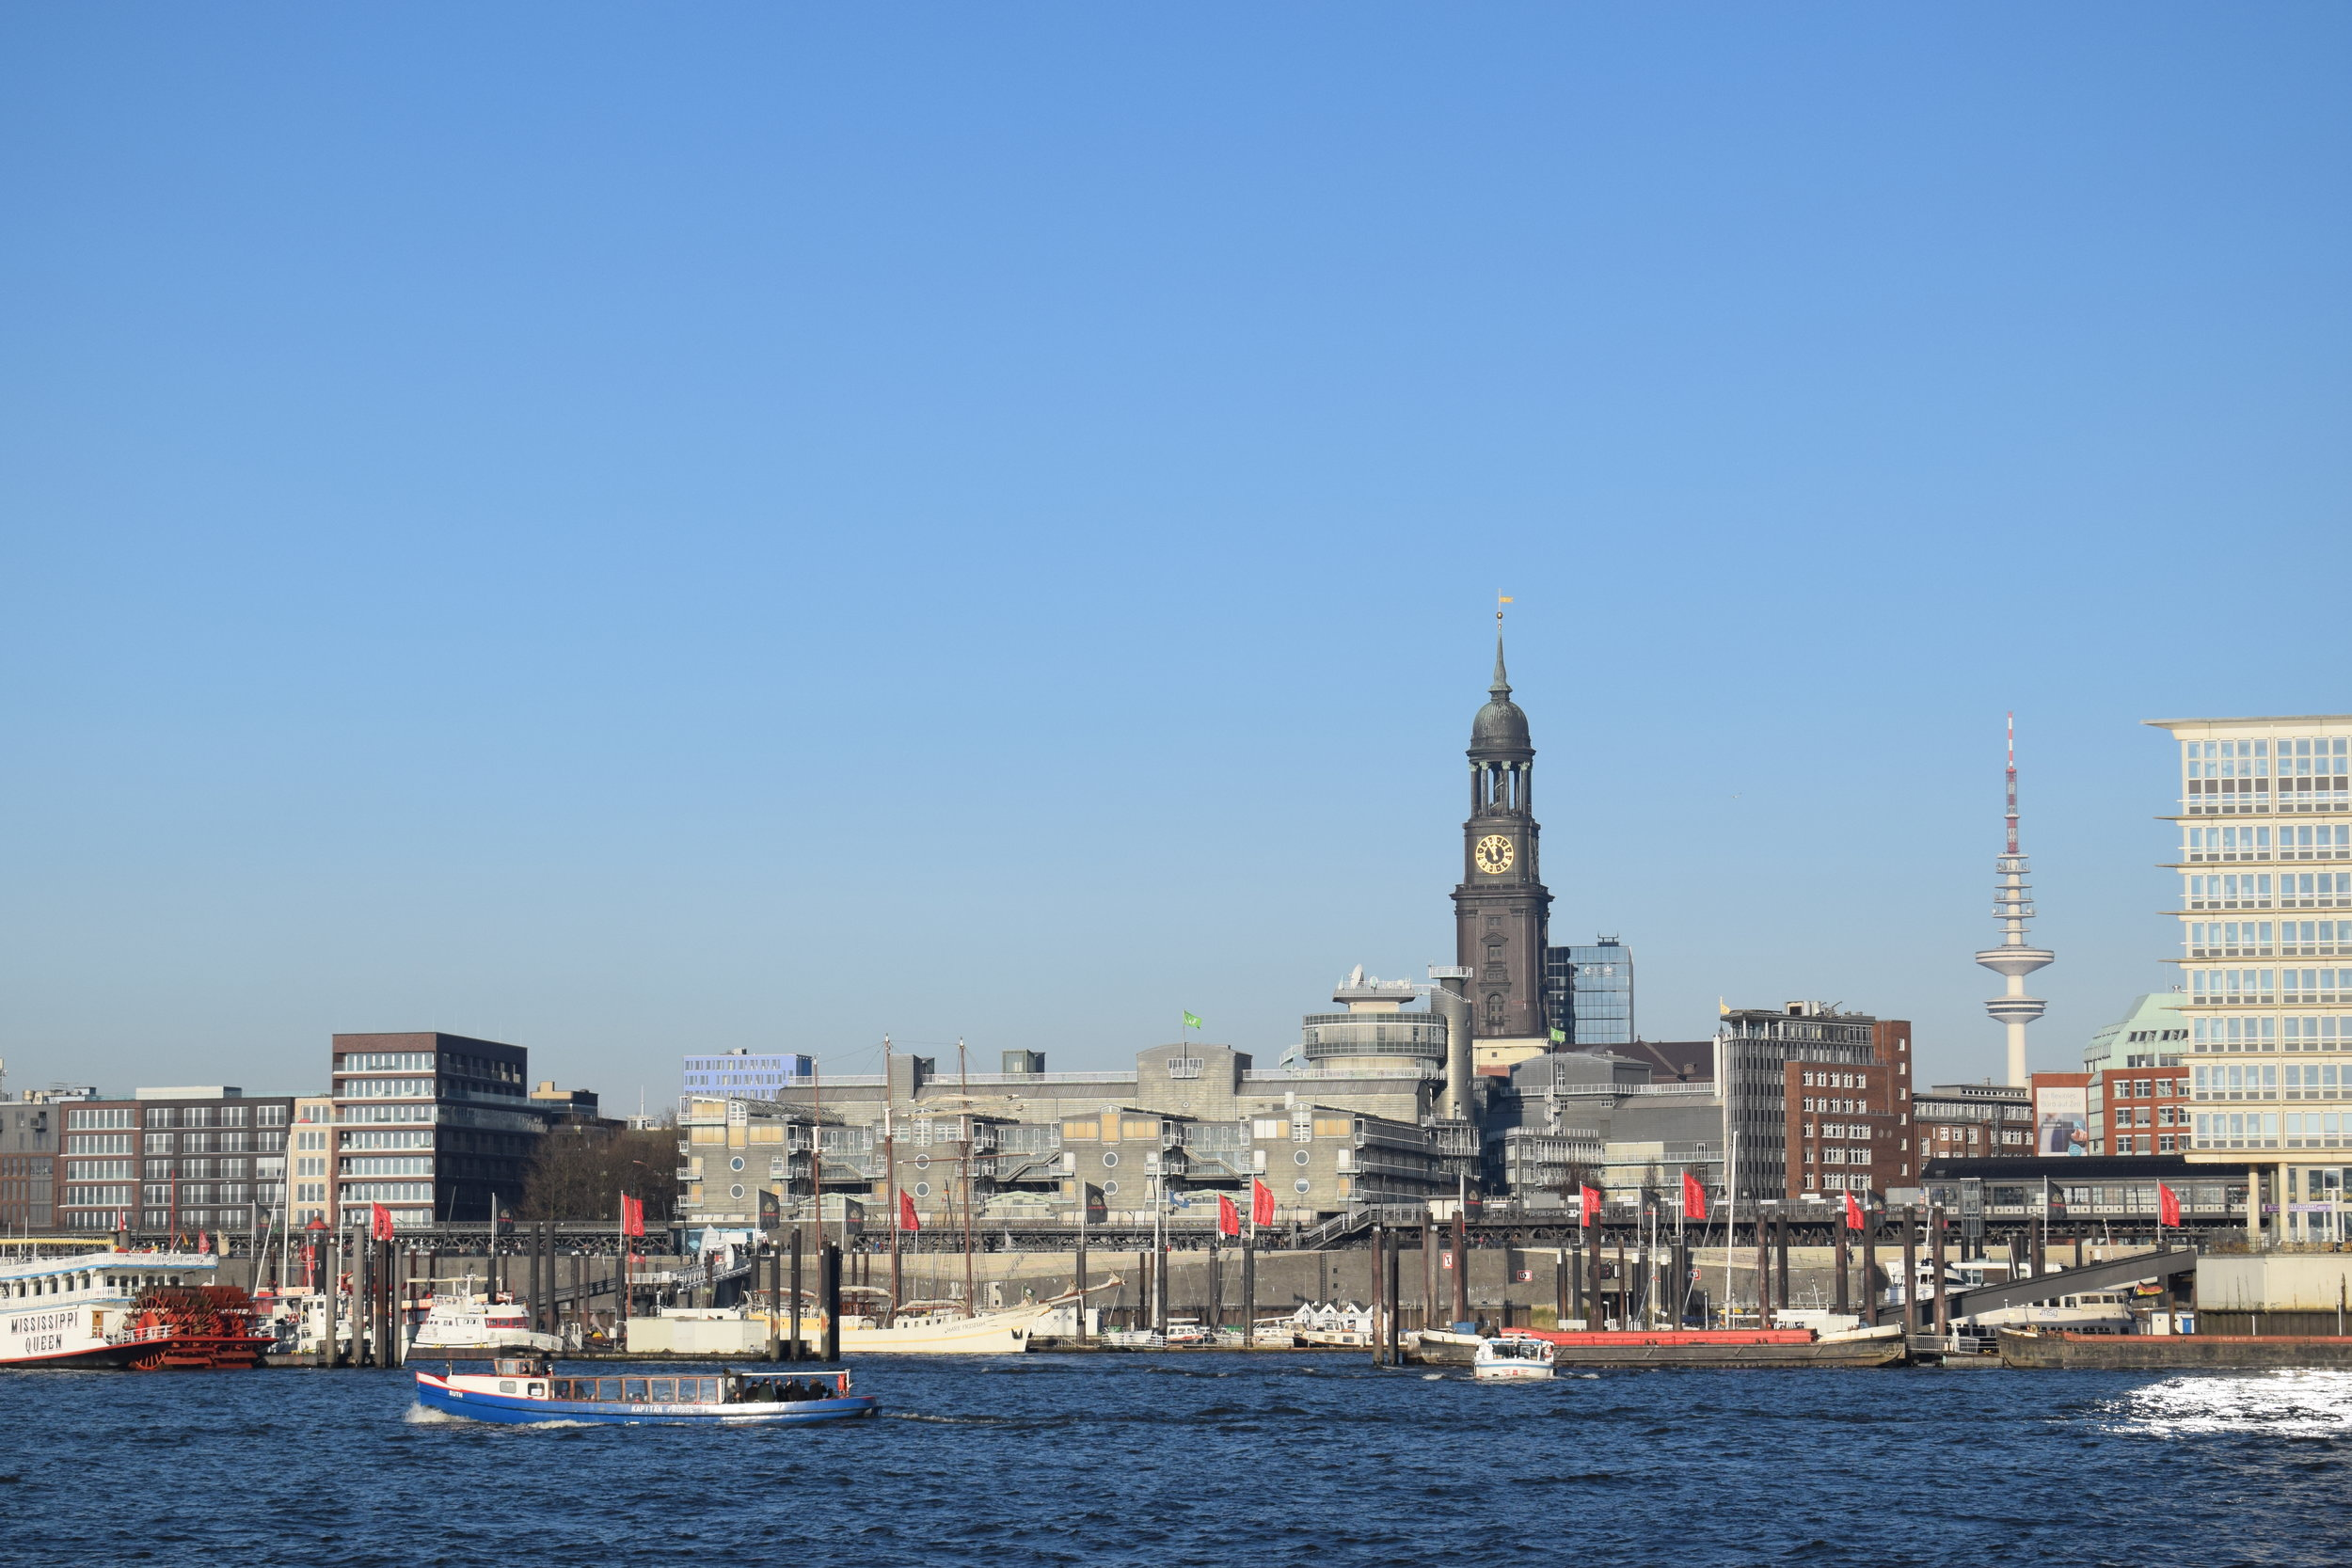 Going on a harbour cruise will give you the opportunity to get great retrospective views of the Hamburg skyline.